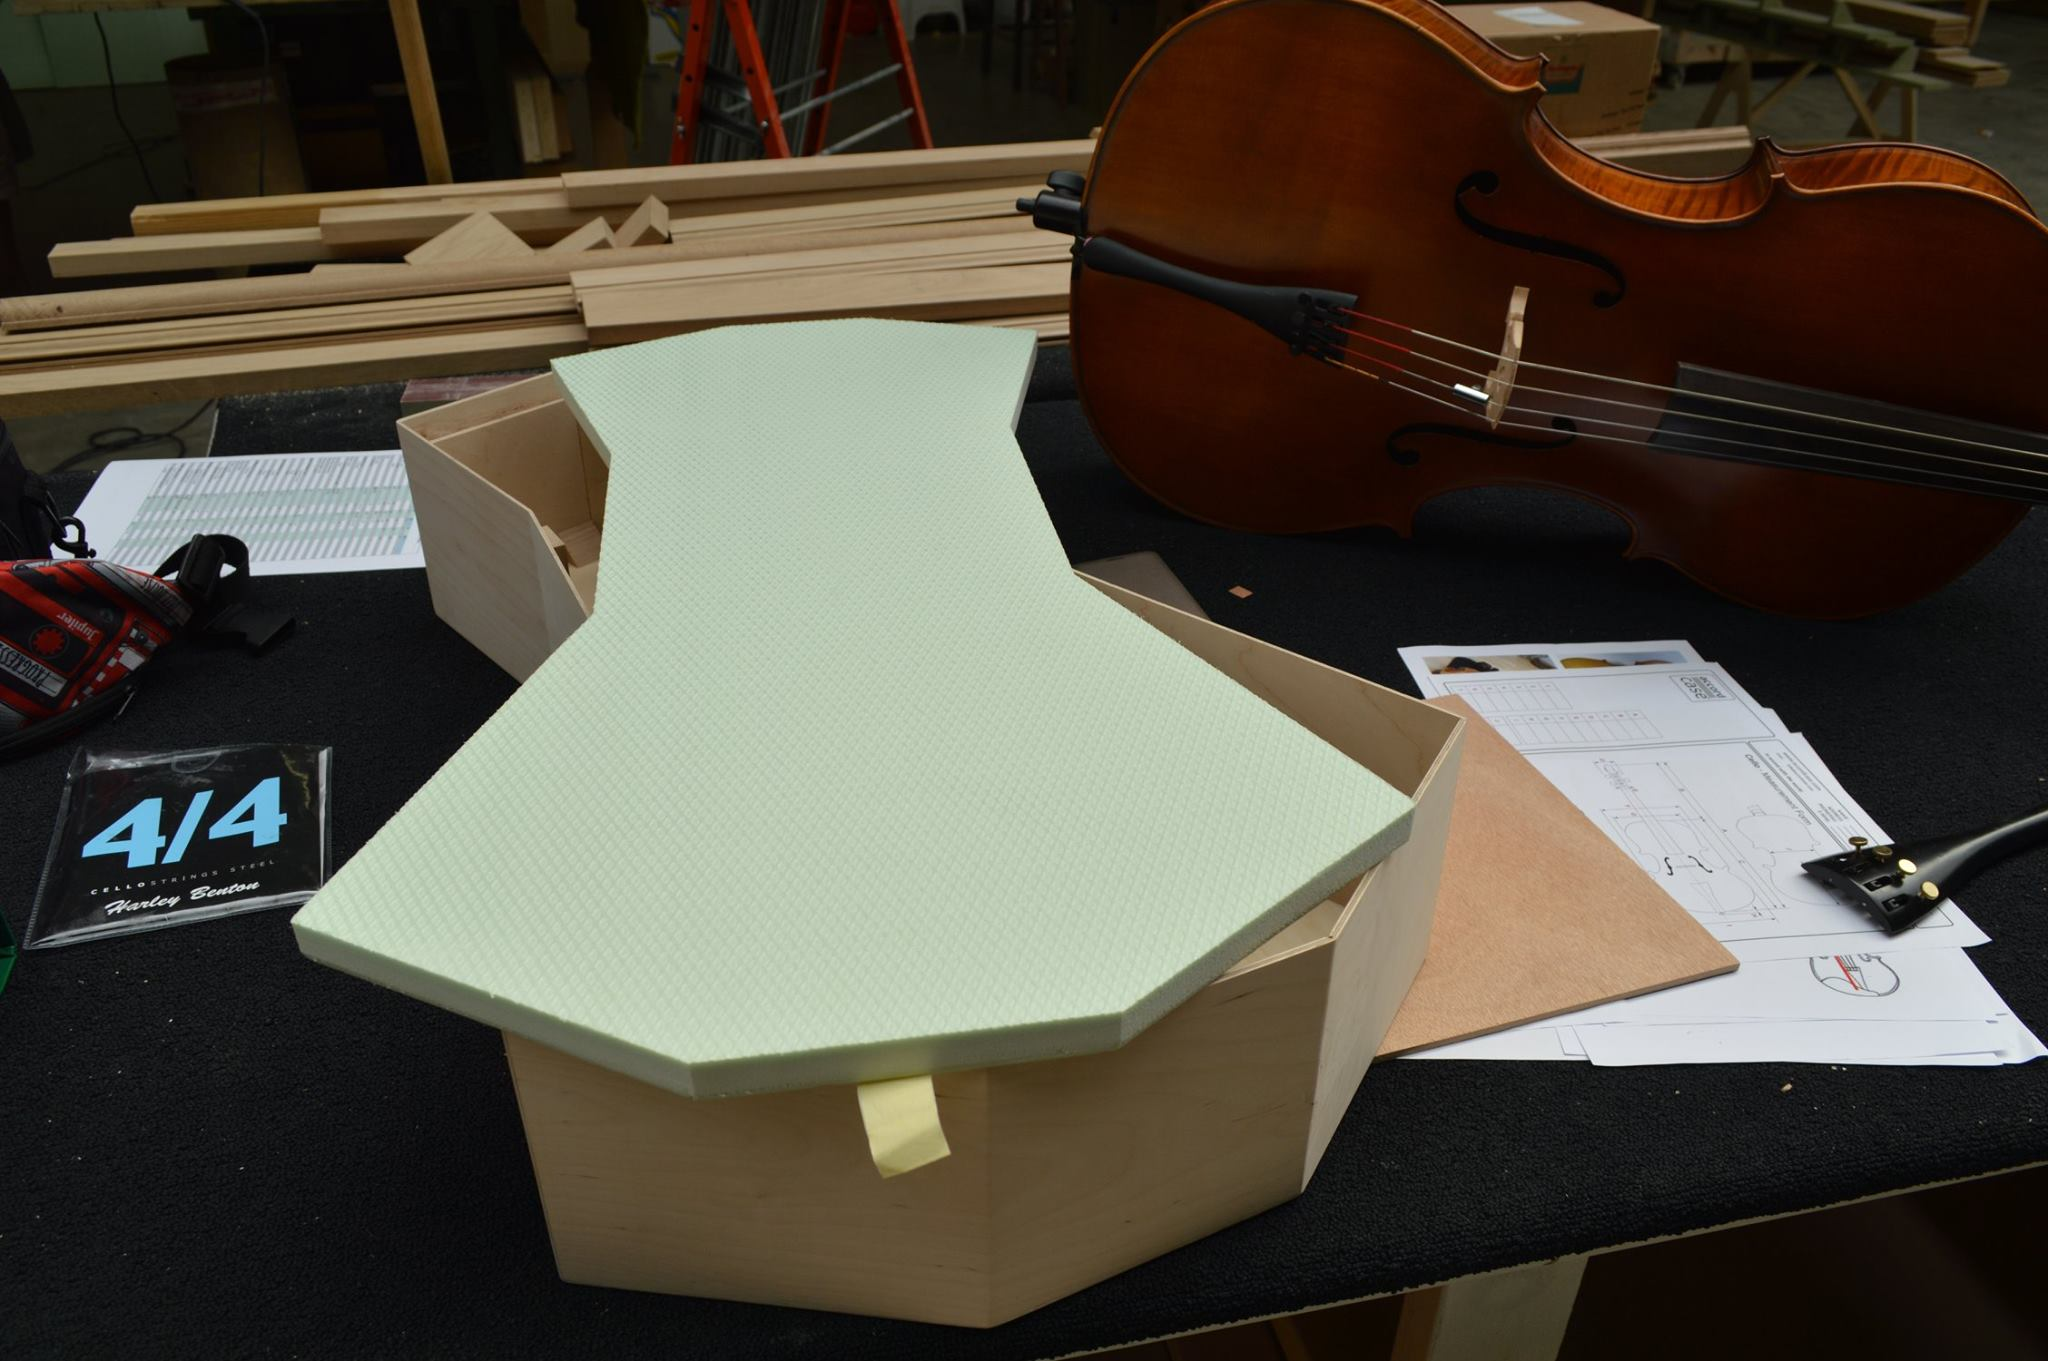 XPS Cello under construction by Anika Beauquesne